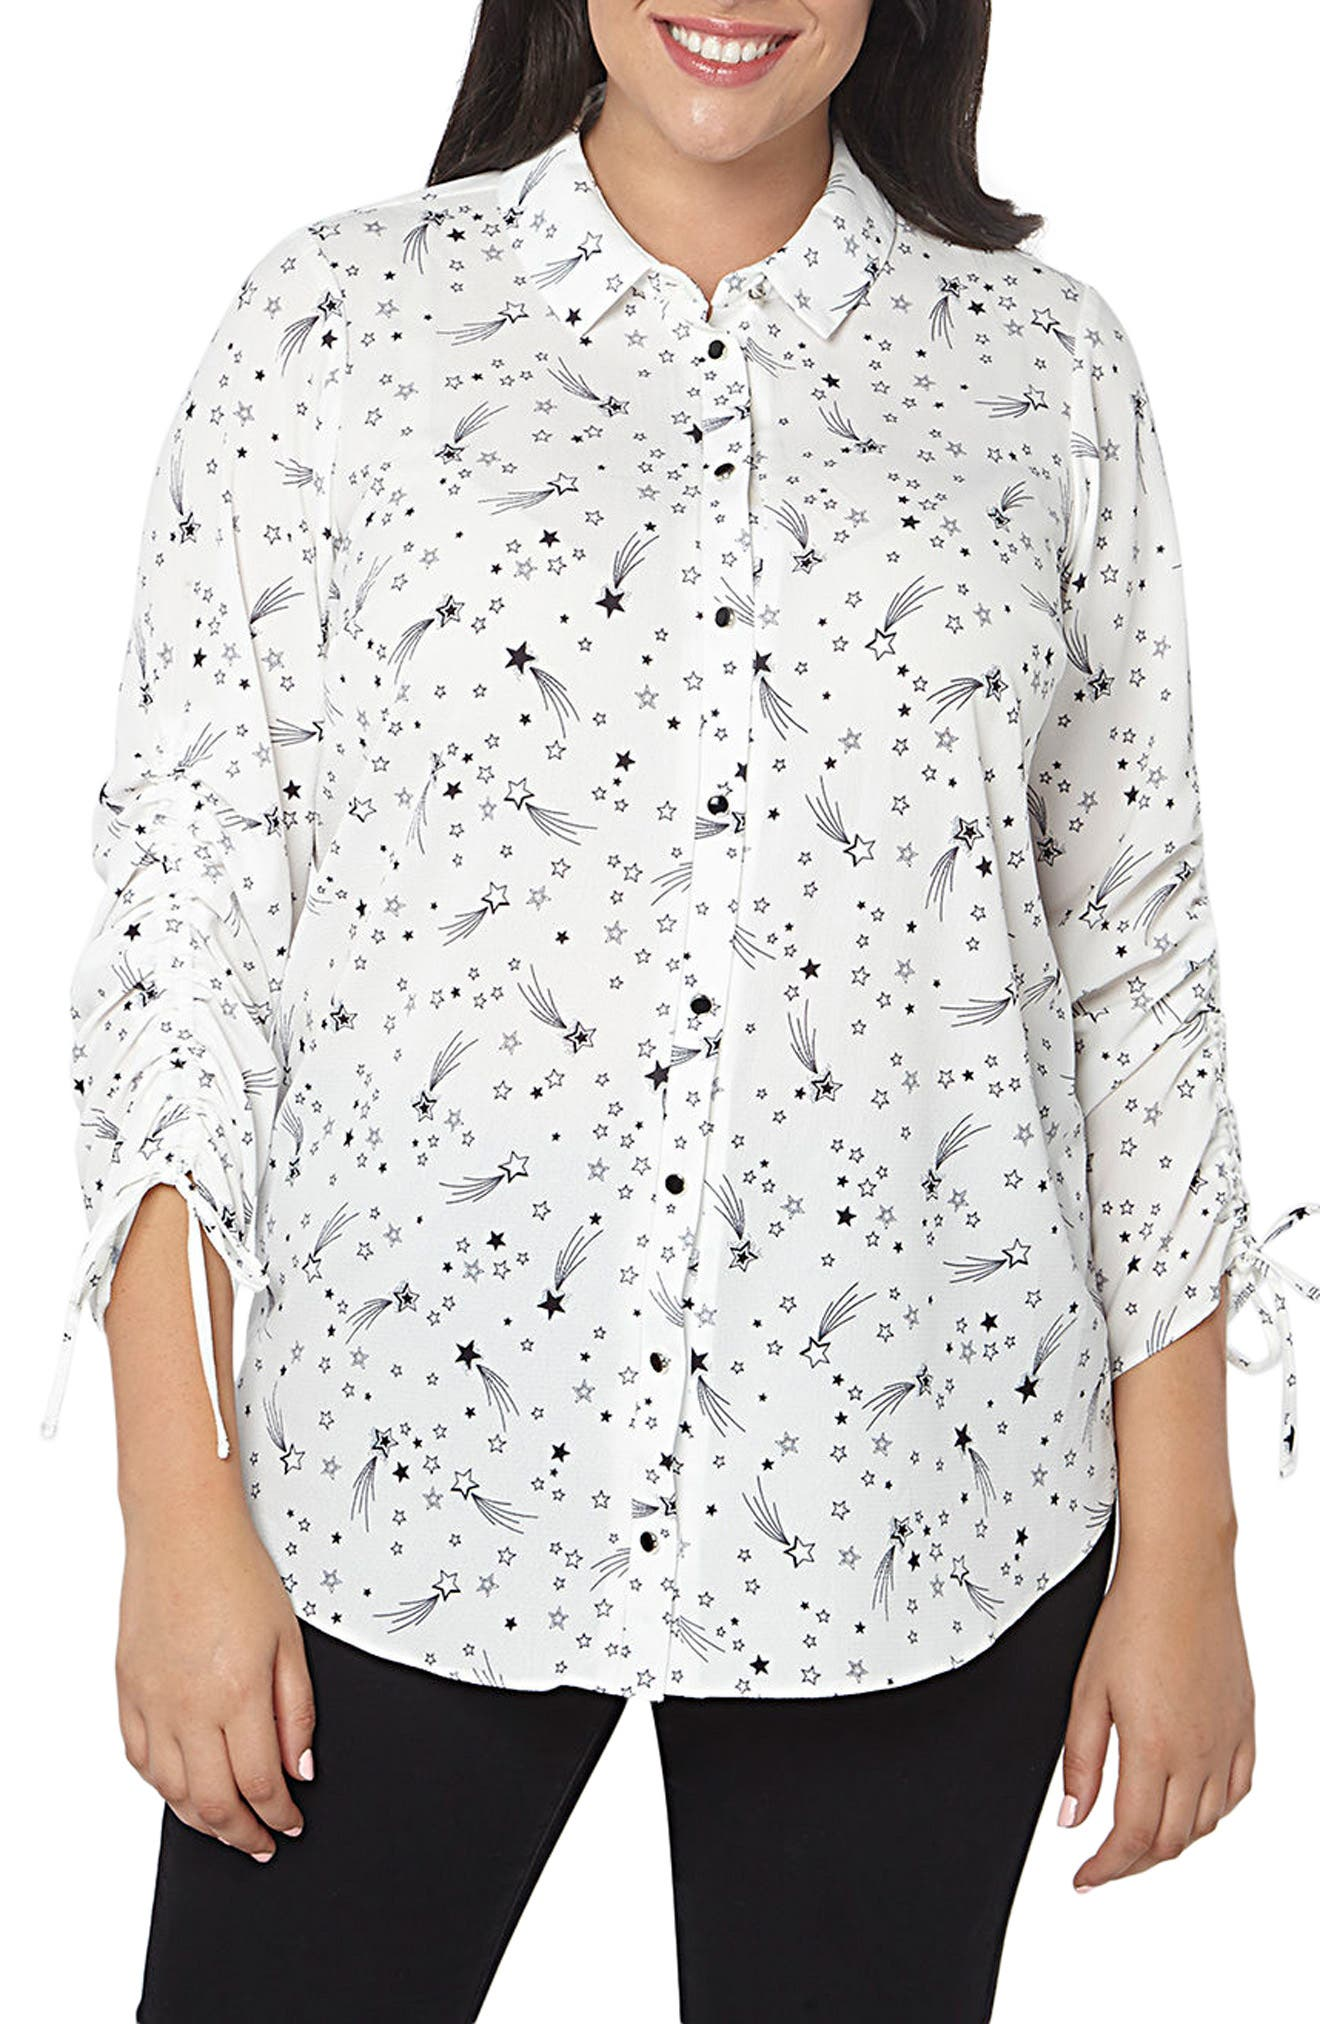 Alternate Image 1 Selected - Evans Star Ruched Shirt (Plus Size)